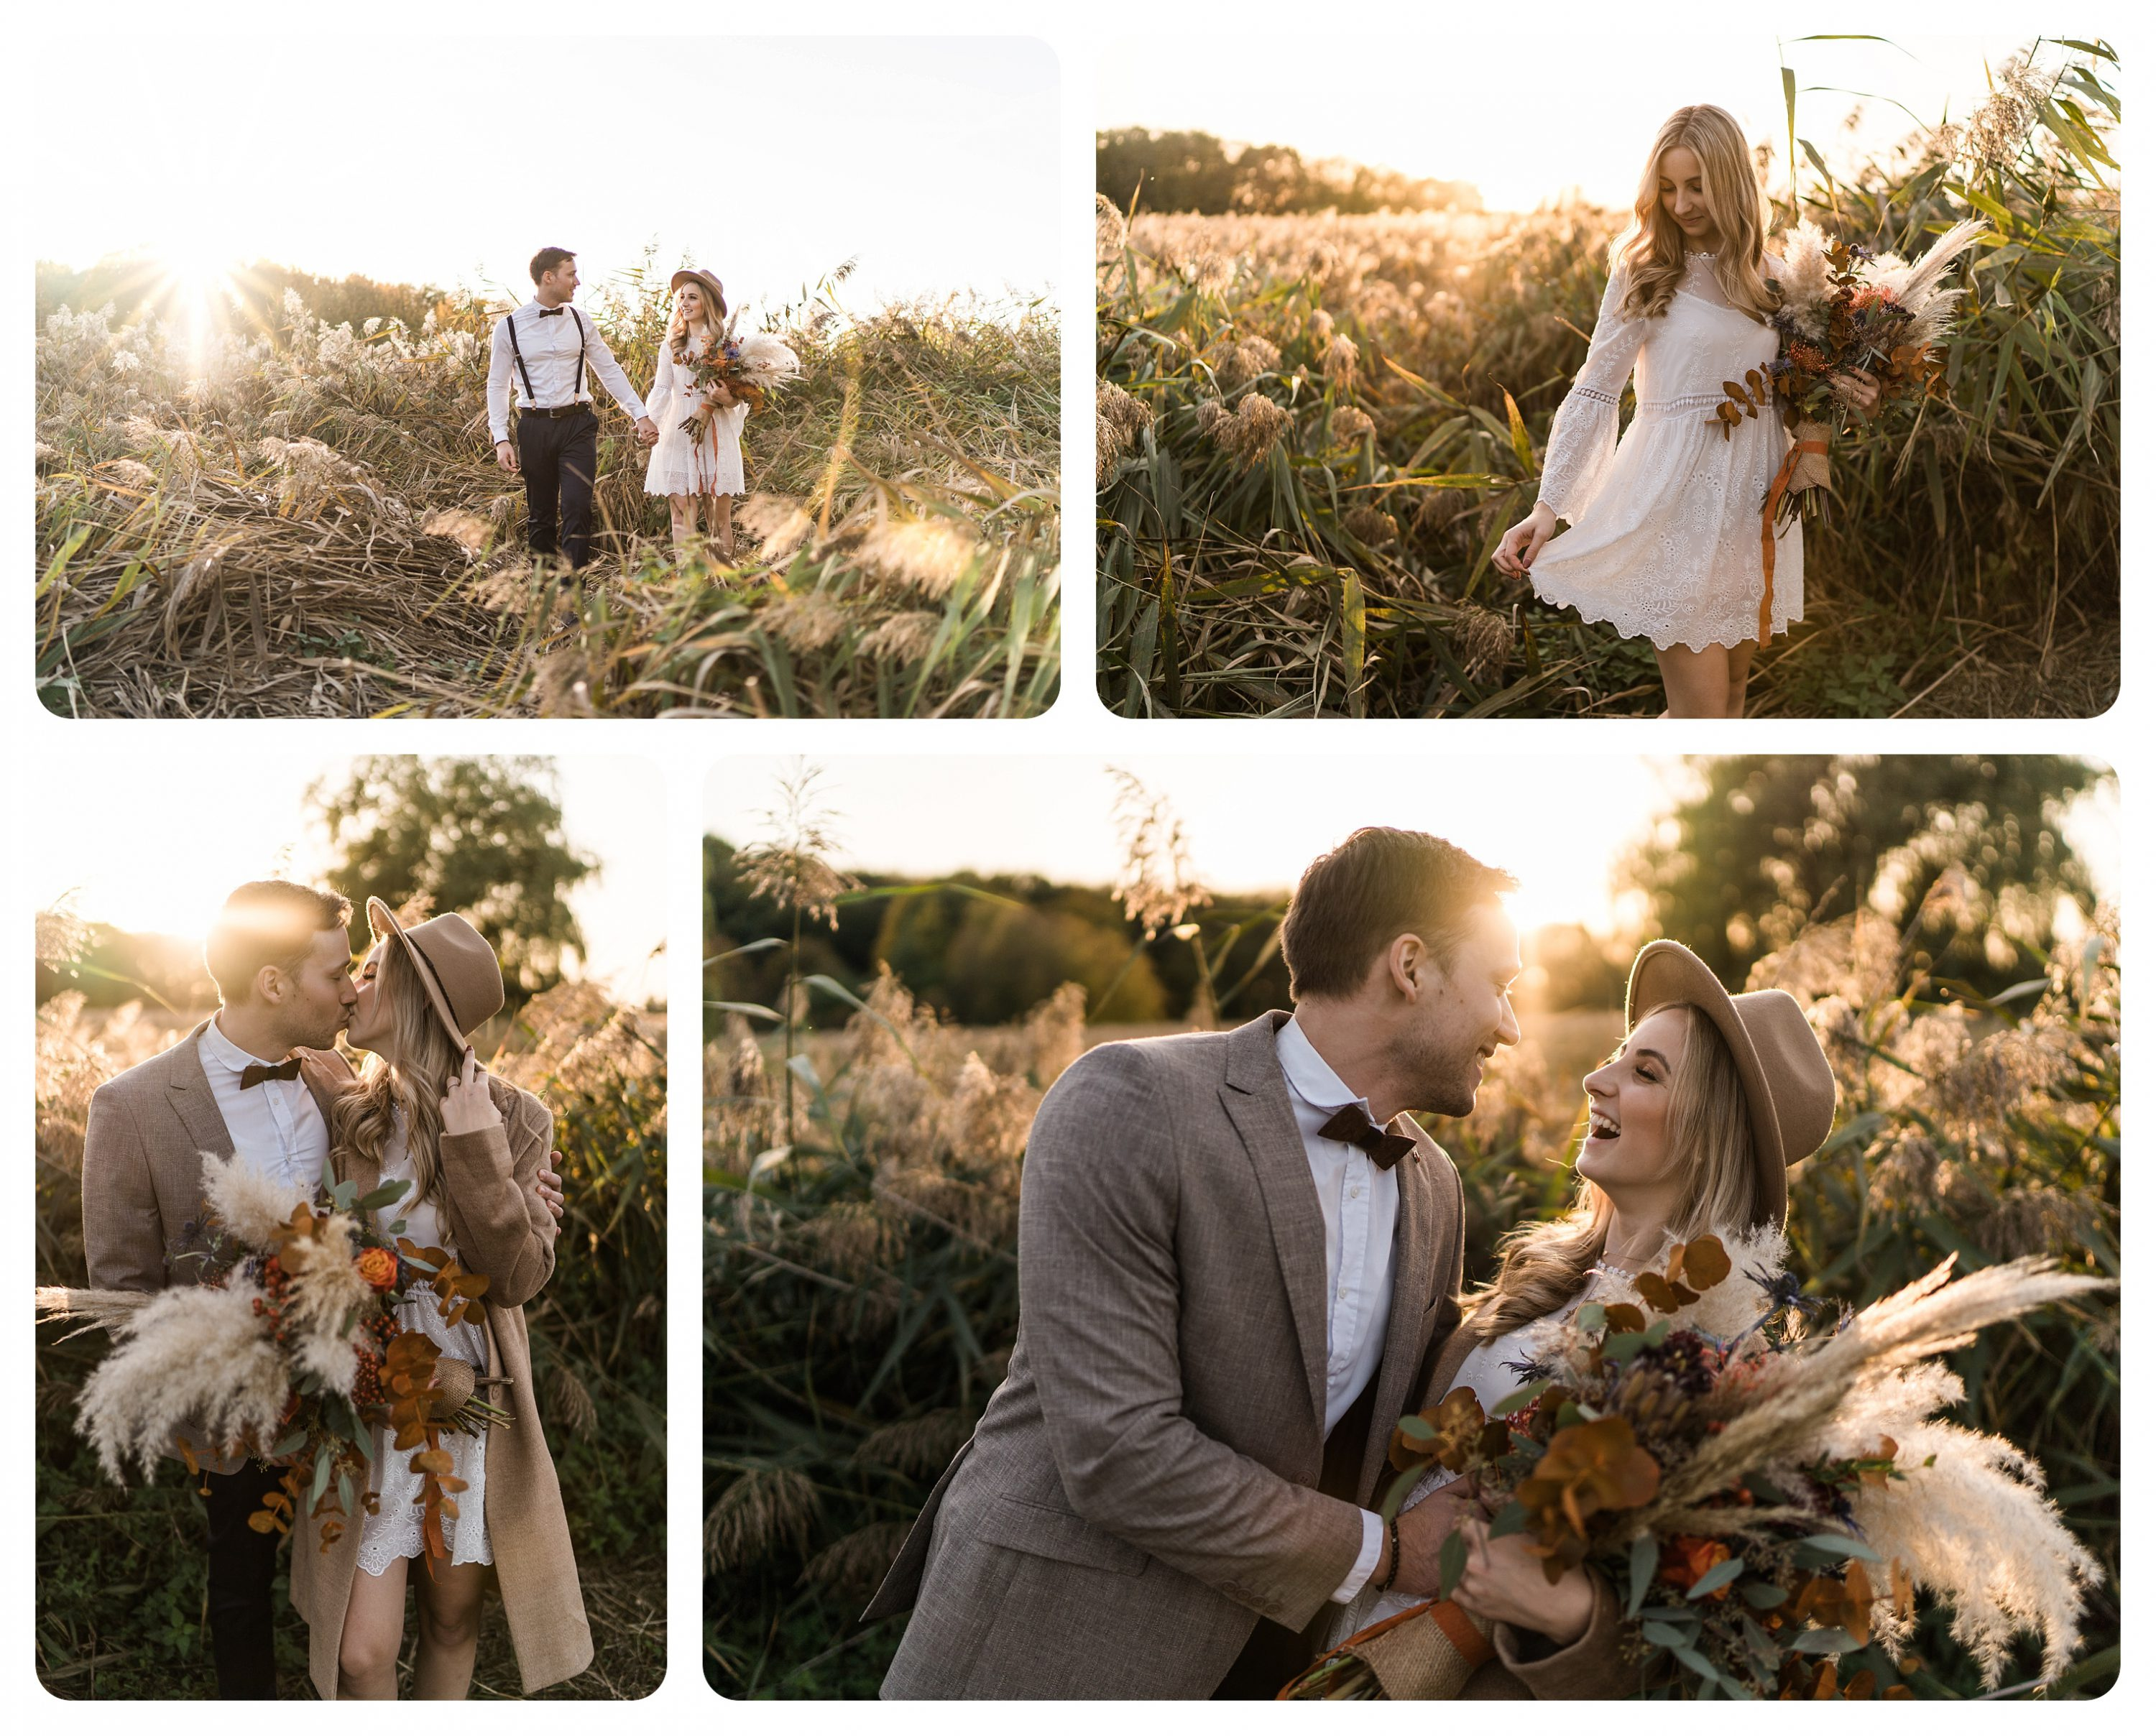 Boho Wedding Inspirationen